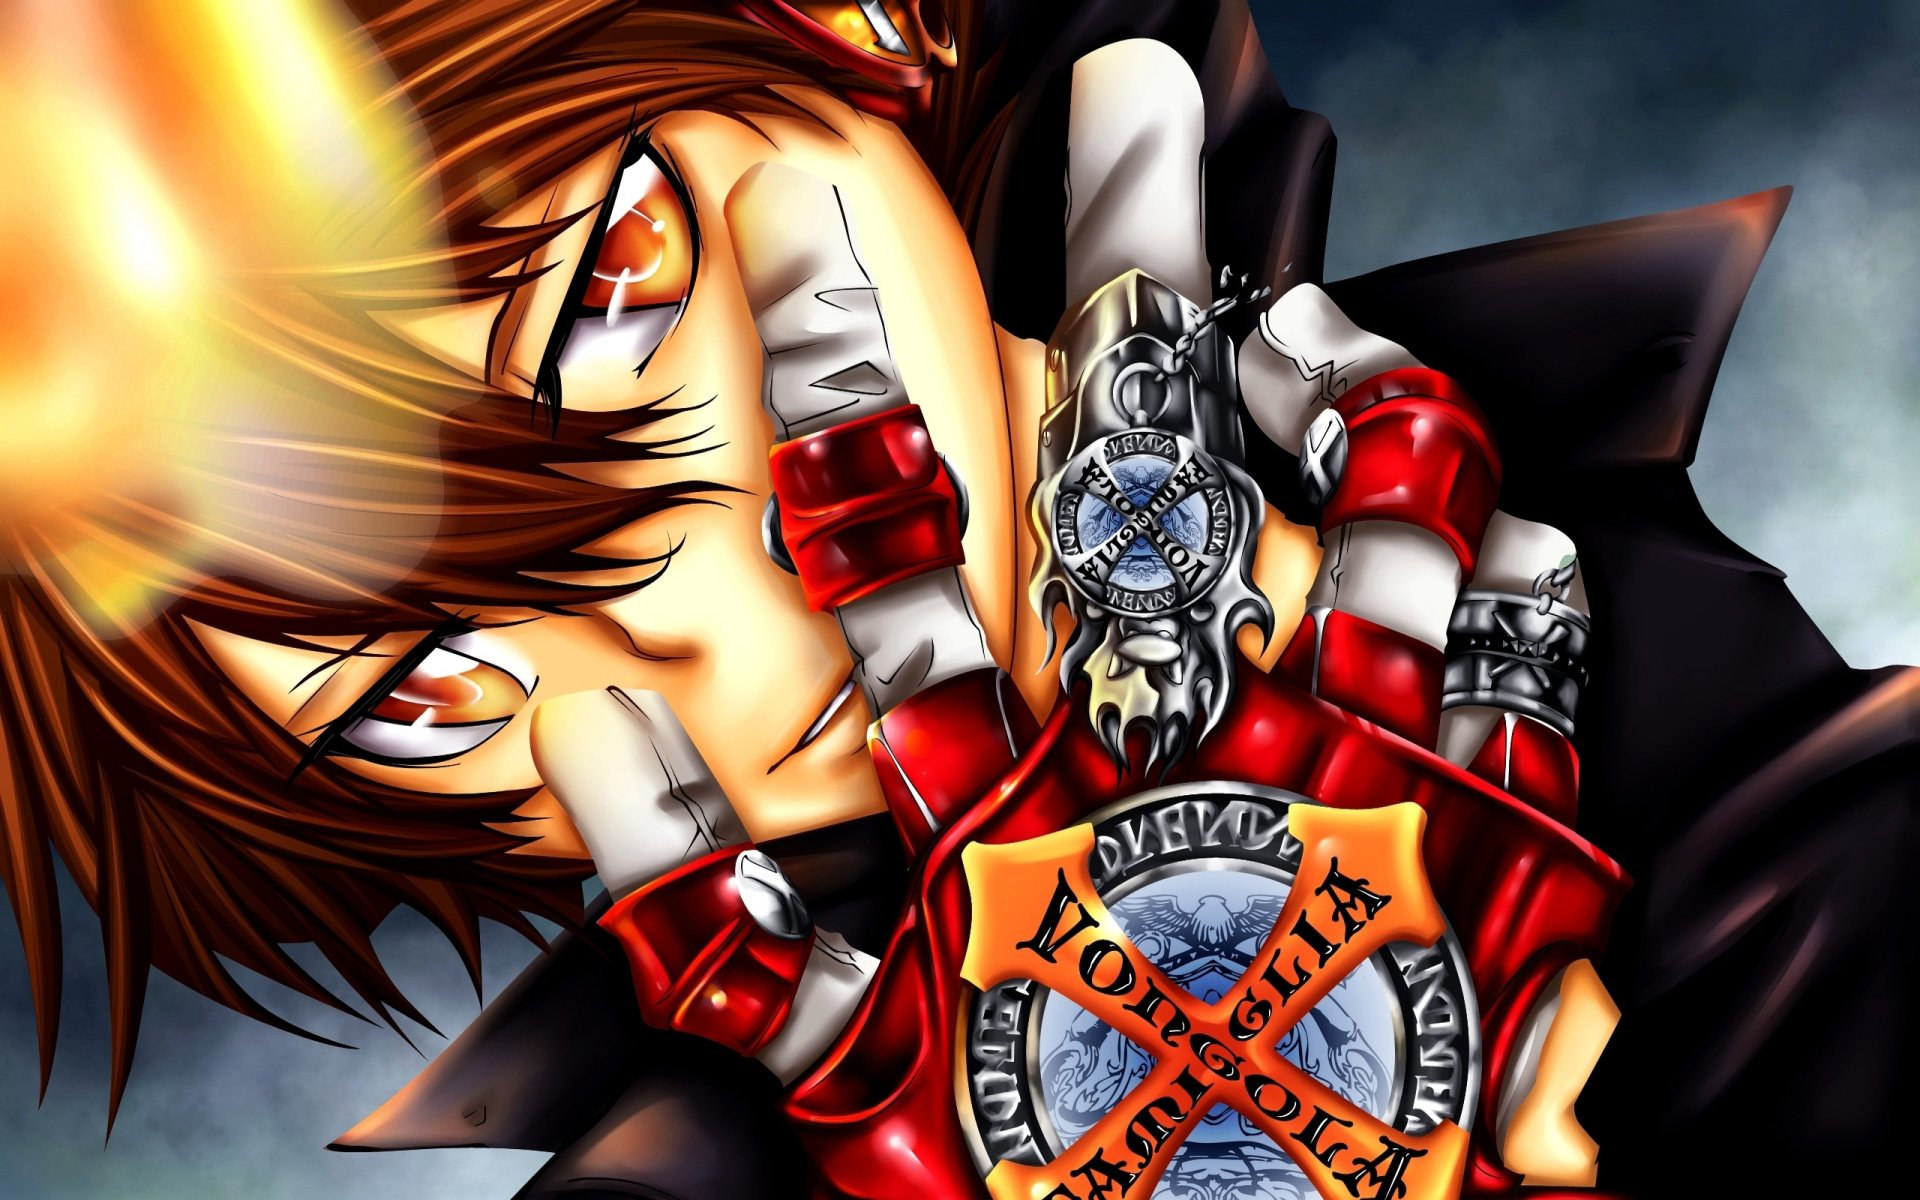 211 Katekyō Hitman Reborn Hd Wallpapers Background Images